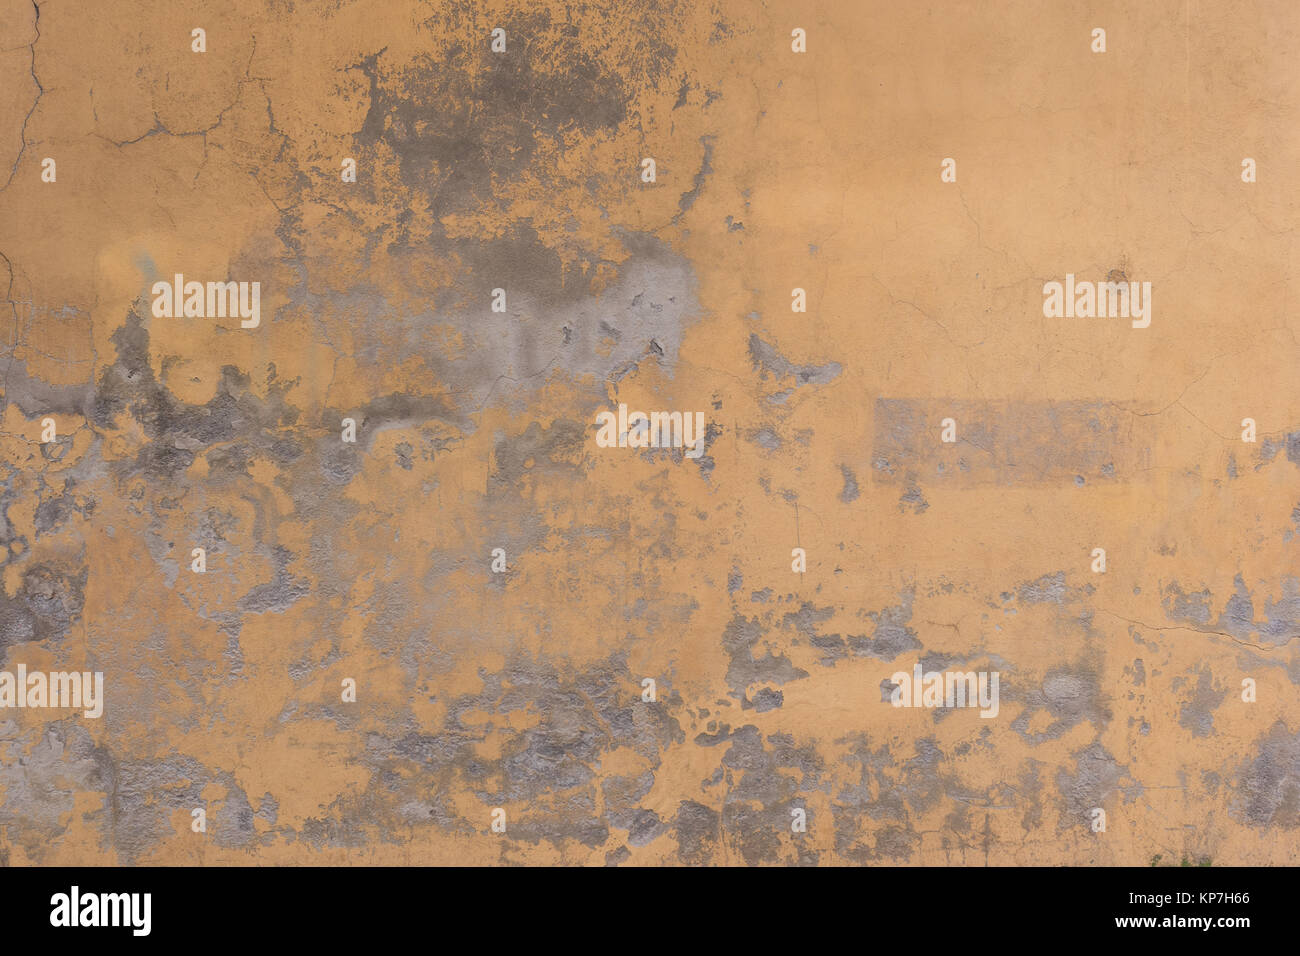 Old cracked yellow wall as background, wallpaper or texture - Stock Image